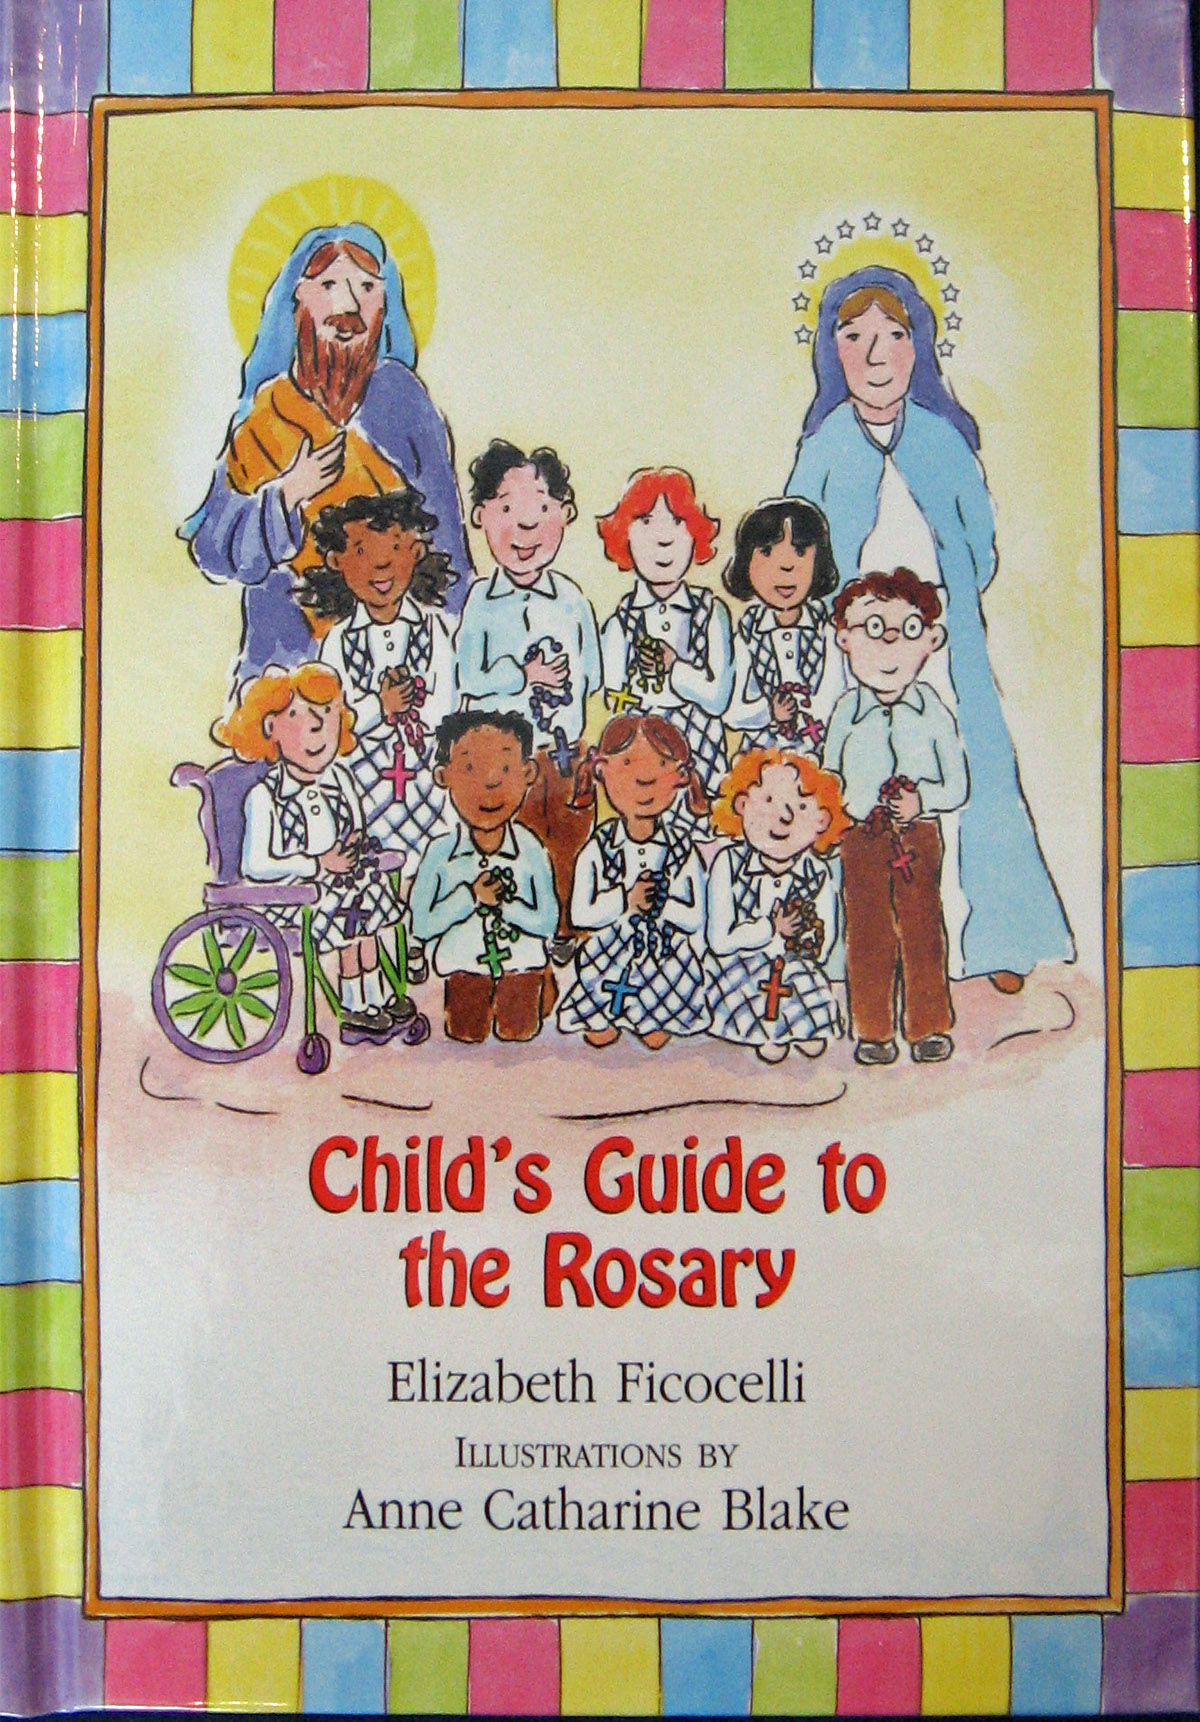 Child's Guide to the Rosary by Elizabeth Ficocelli 108-9780809167364